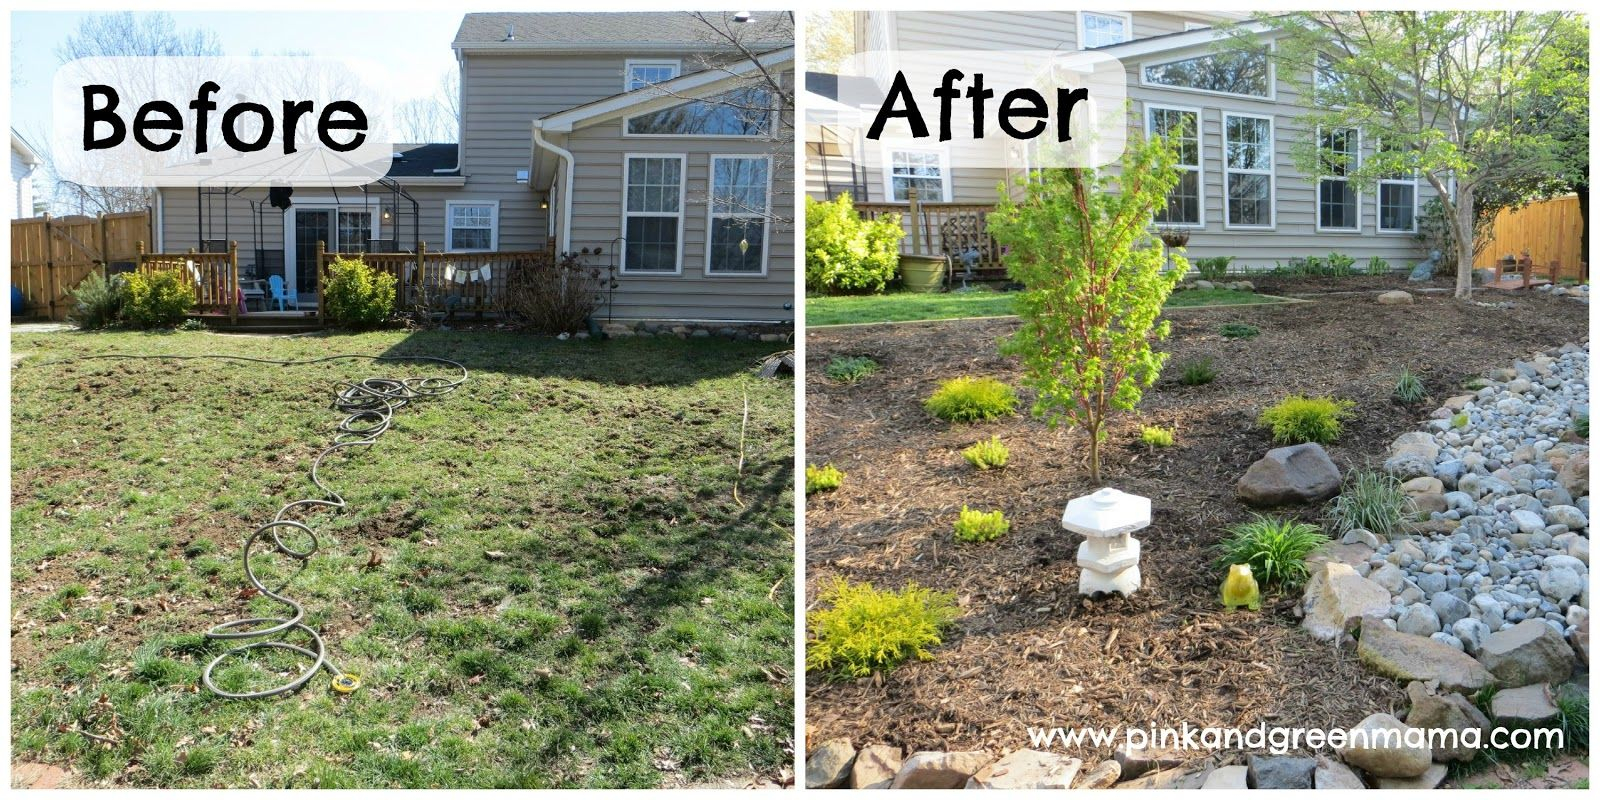 Before And After Diy Backyard Makeover On A Budget From Pink And regarding Backyard Makeover Ideas